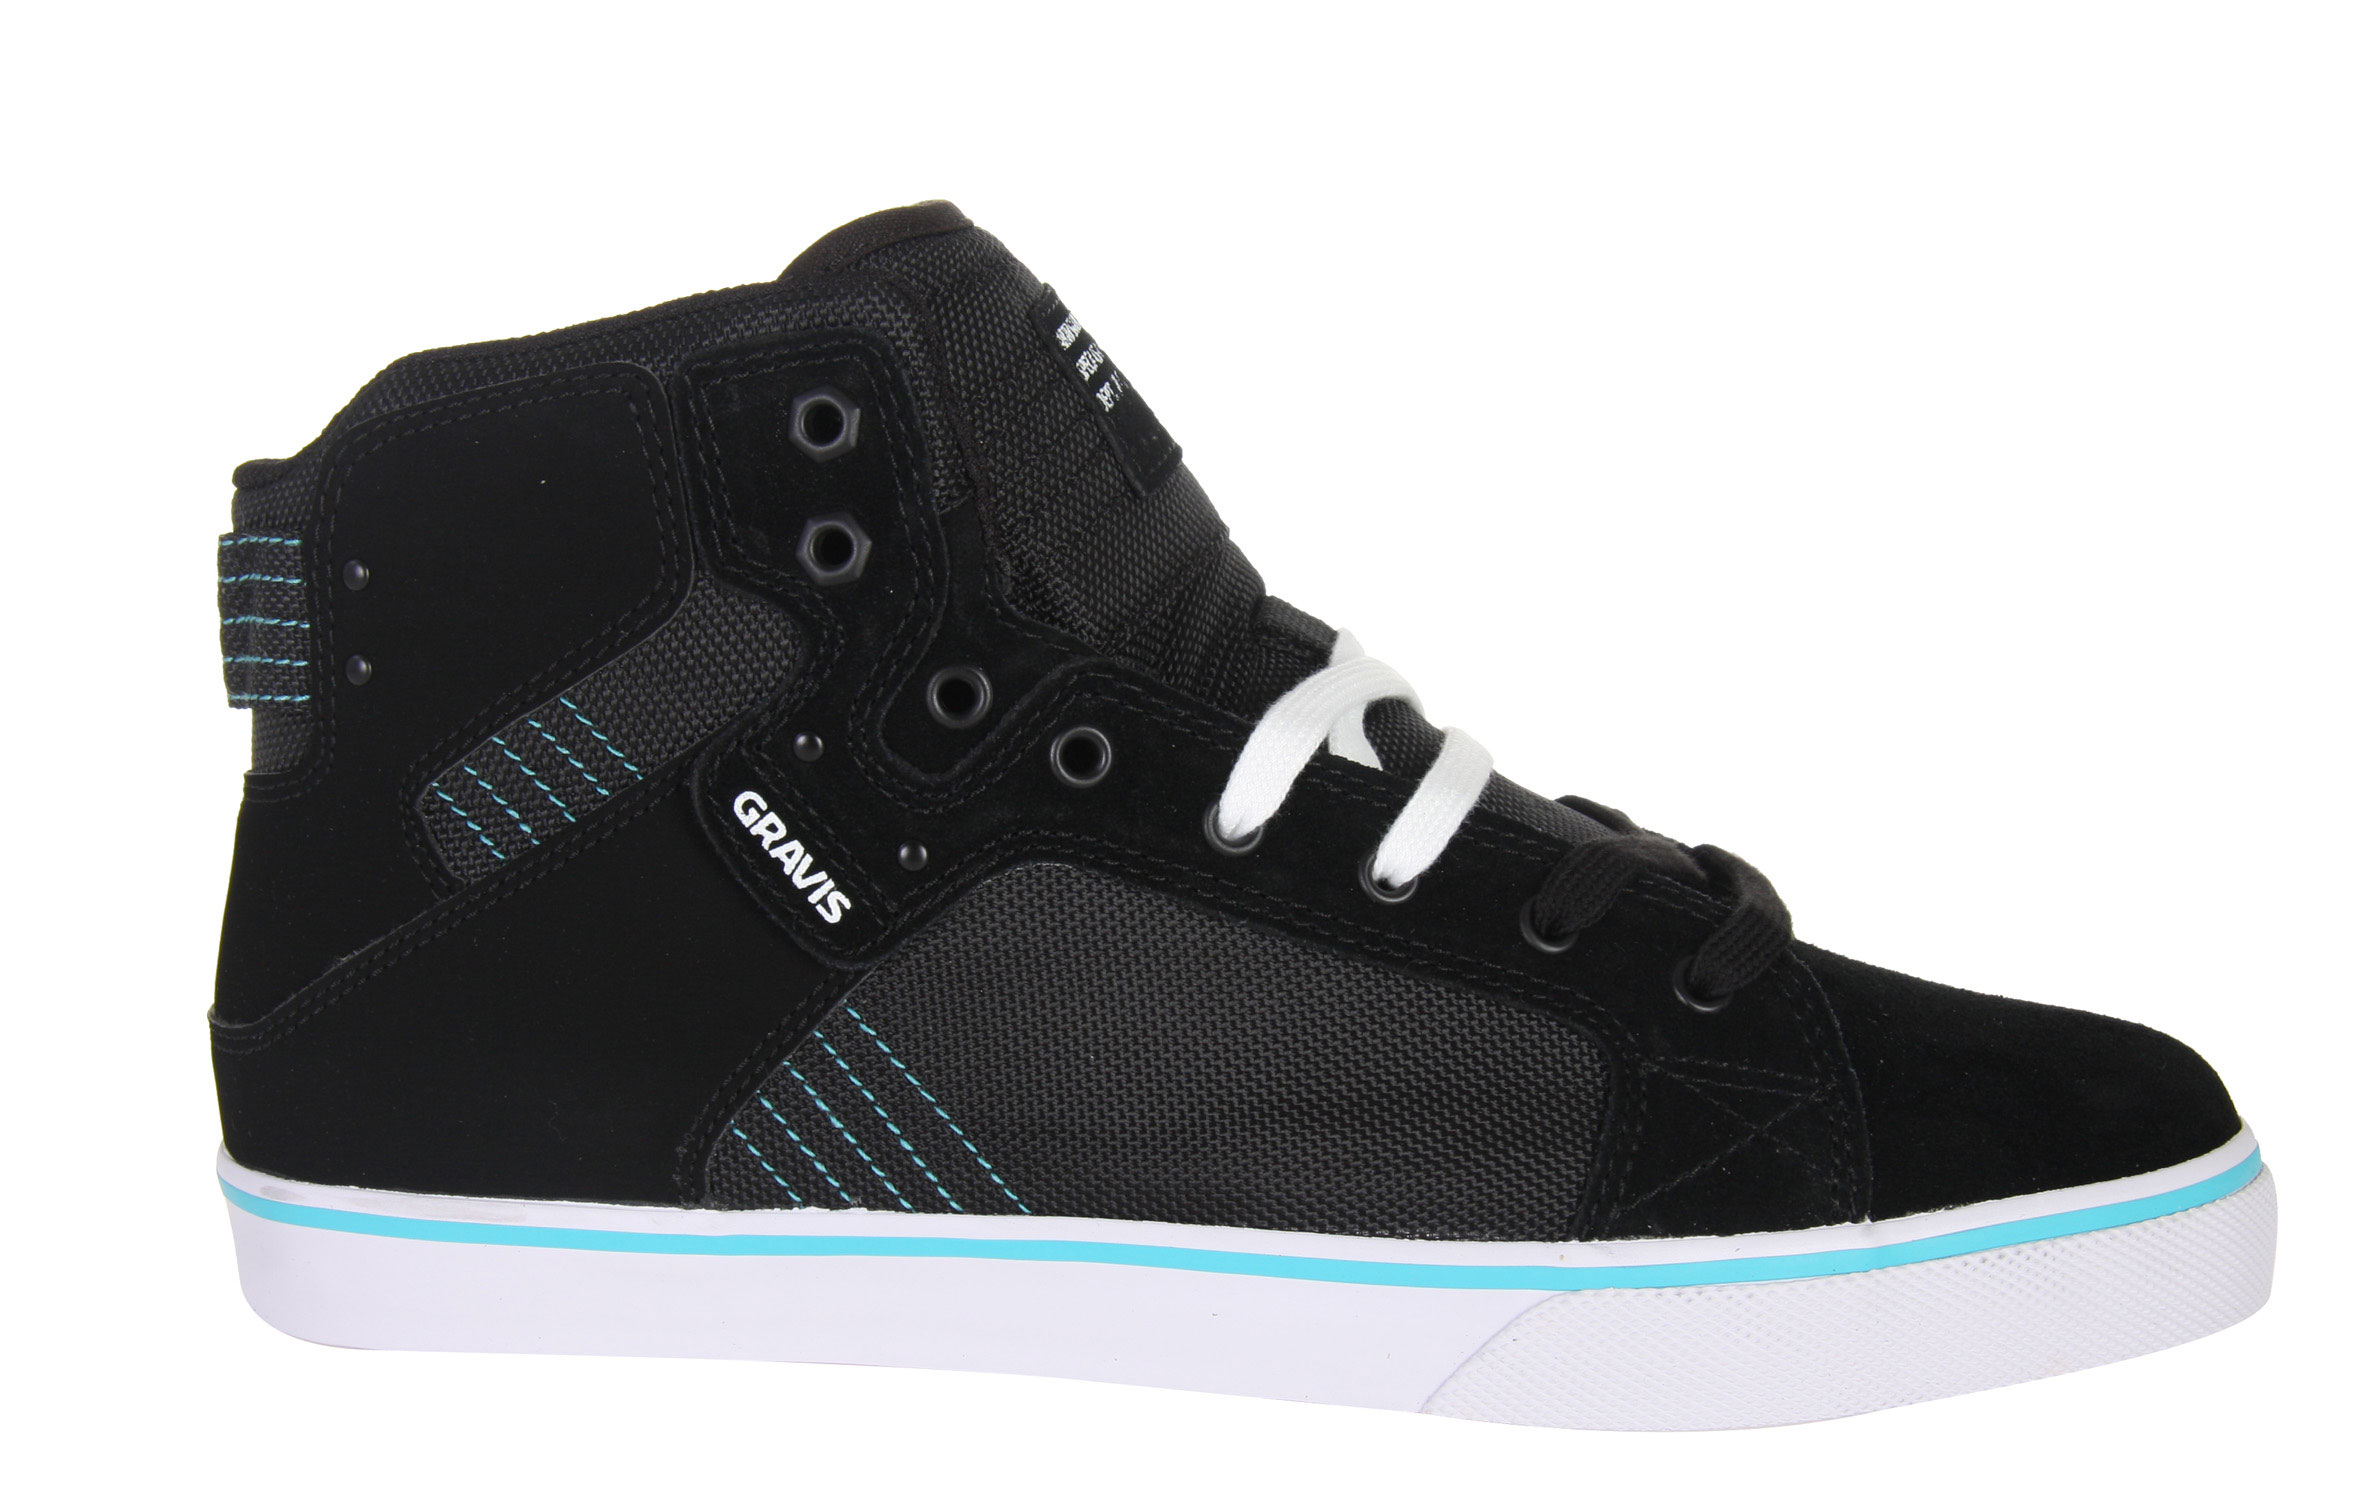 Skateboard Are you tired of hurting yourself when you are tearing it up on your board? Well the problem with most skate shoes are they are low cut, below the ankle shoes. When your ankle is not covered, this really makes it vulnerable to injury. That is why you need to get a pair of these Gravis Viking Hi Skate Shoes. They have a great high top design that will ensure you aren't wrecking your ankles when your wrecking your shred stick. Your ankles are the most important part of your body when it comes to skating, you can't skate with a broken ankle. So protect your ankles while making your feet look great. These shoes just aren't all looks and protection. They are a great performing shoe that will have you sticking all your tricks.Key Features of the Gravis Viking Hi Skate Shoes: New last shape and vulcanized construction Suede, canvas and ripstop upper TecTuff material on toe and eyestay of black colorway Comfort mesh lining Cloud 9 PU footbed High traction rubber outsole - $59.95